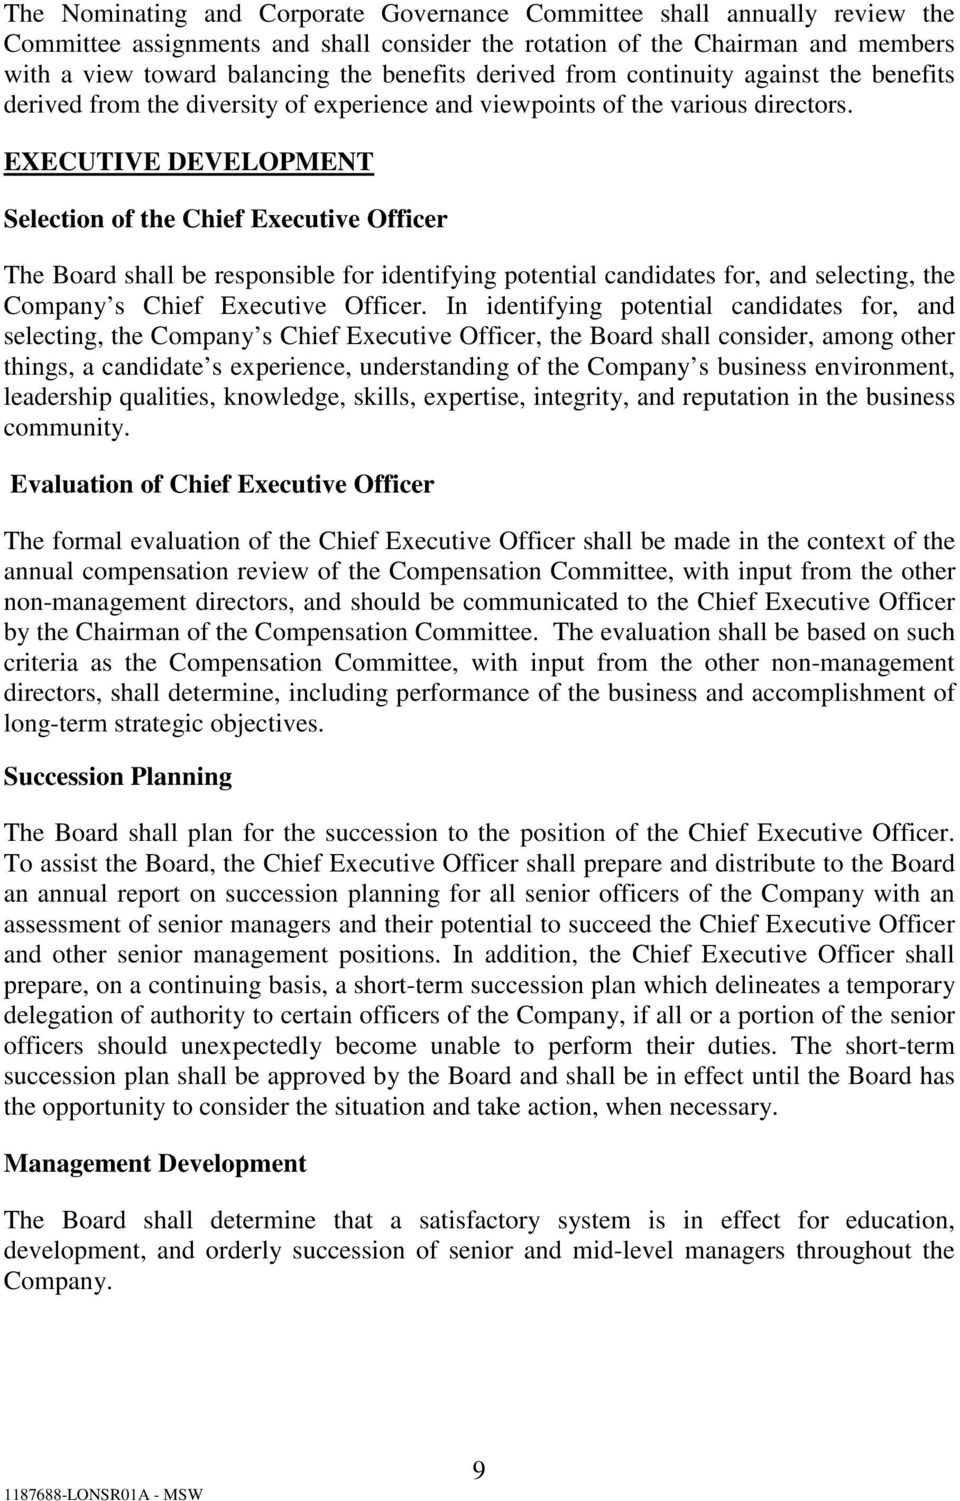 EXECUTIVE DEVELOPMENT Selection of the Chief Executive Officer The Board shall be responsible for identifying potential candidates for, and selecting, the Company s Chief Executive Officer.